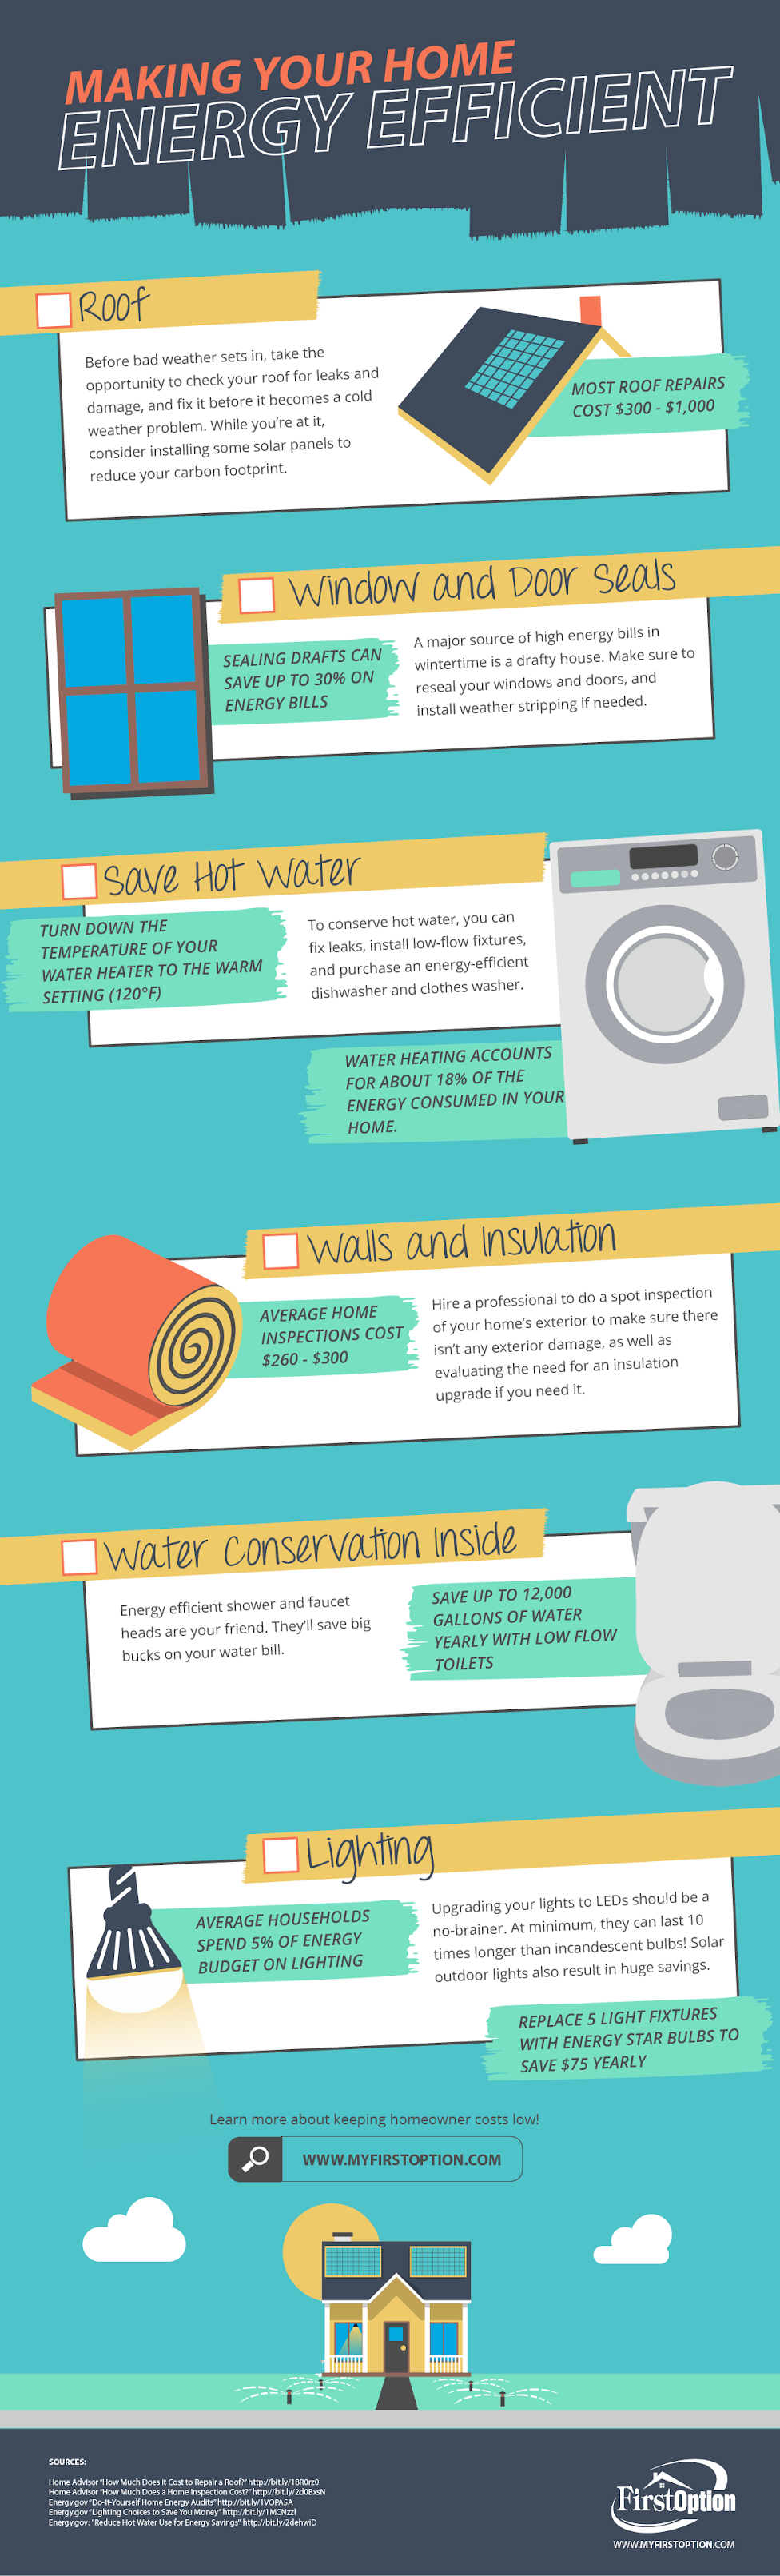 Making Your Home Energy Efficient #infographic #Energy Efficiency #Energy Savings Tips #Homeowner Tips